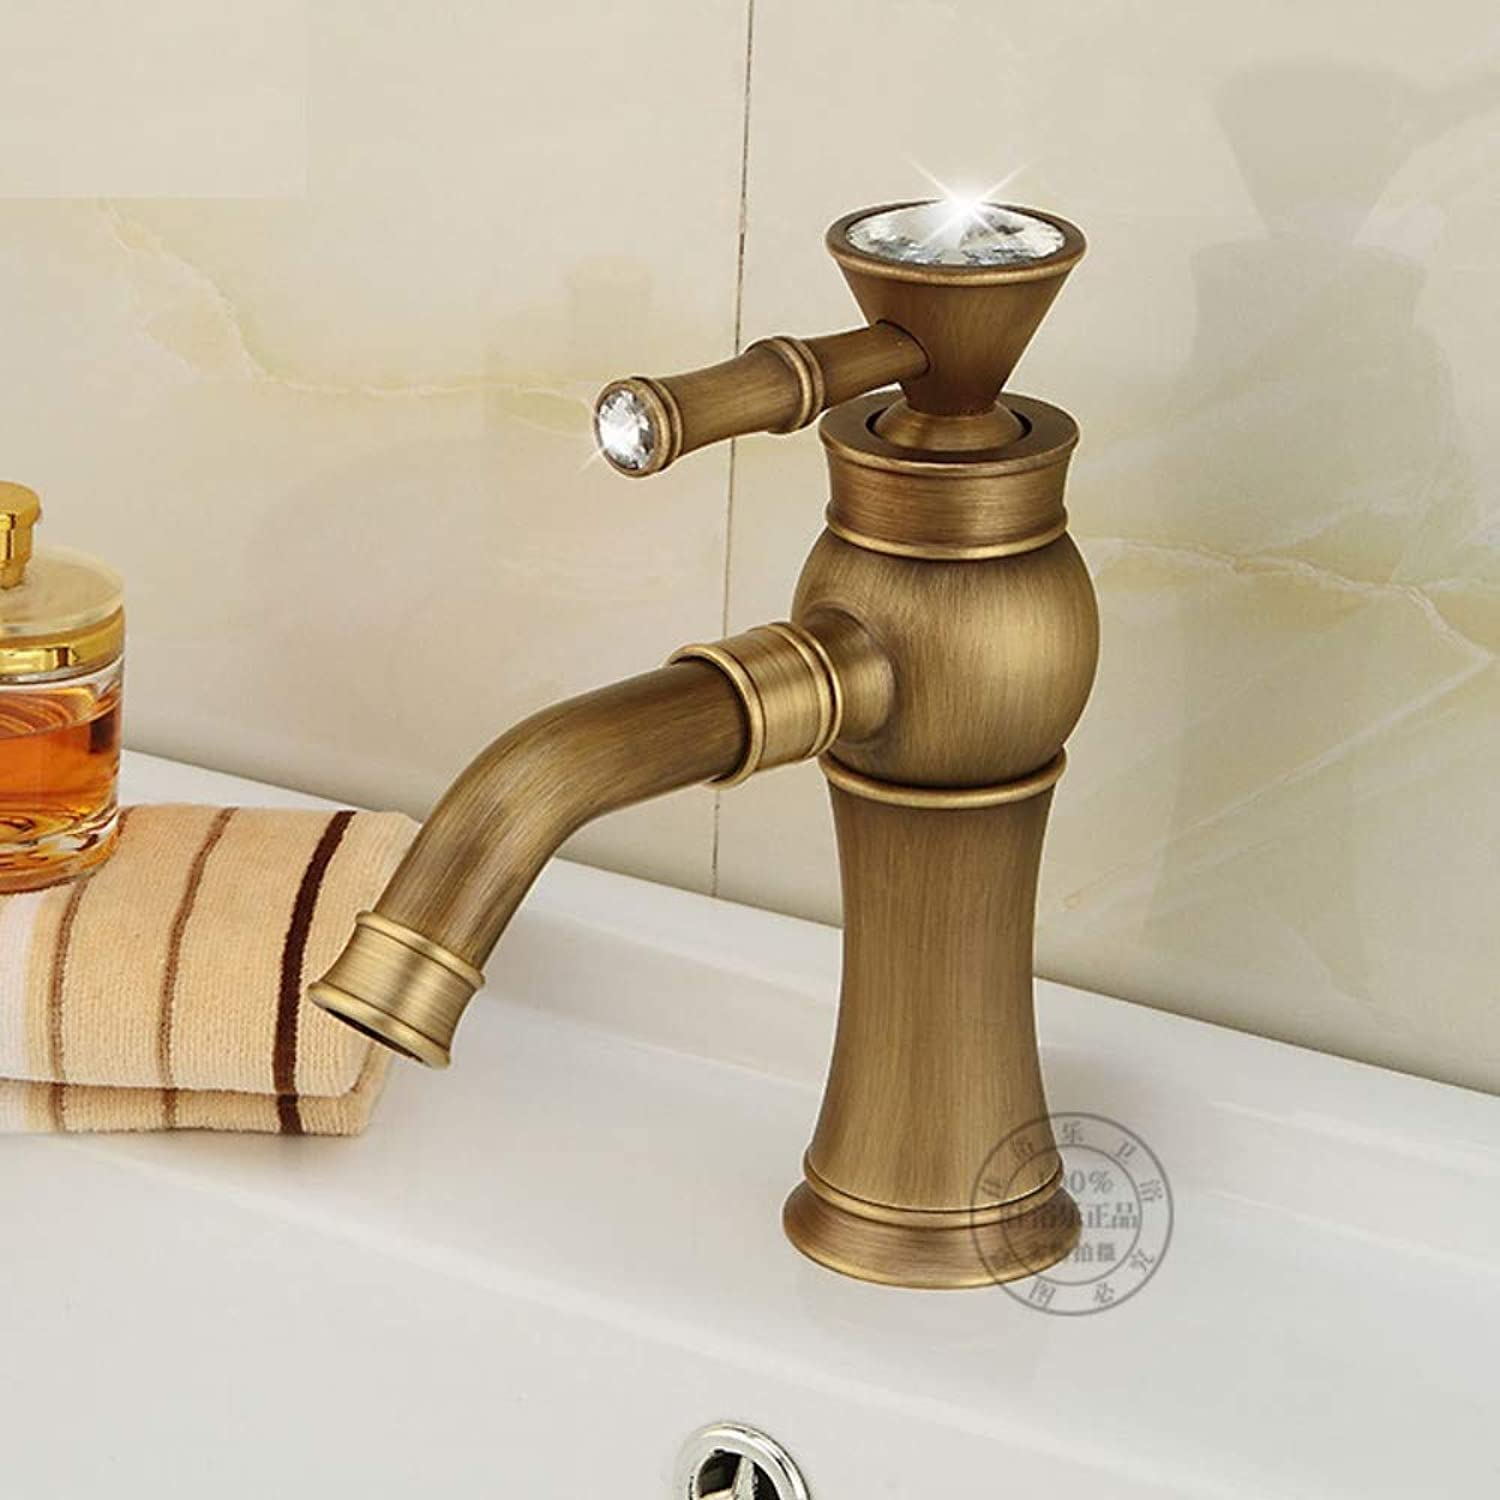 Sink Mixer Tap Bath Taps ?Copper Hot and Cold Water Crystal Handle Faucet Heightened Single Hole Above Counter Basin Faucet